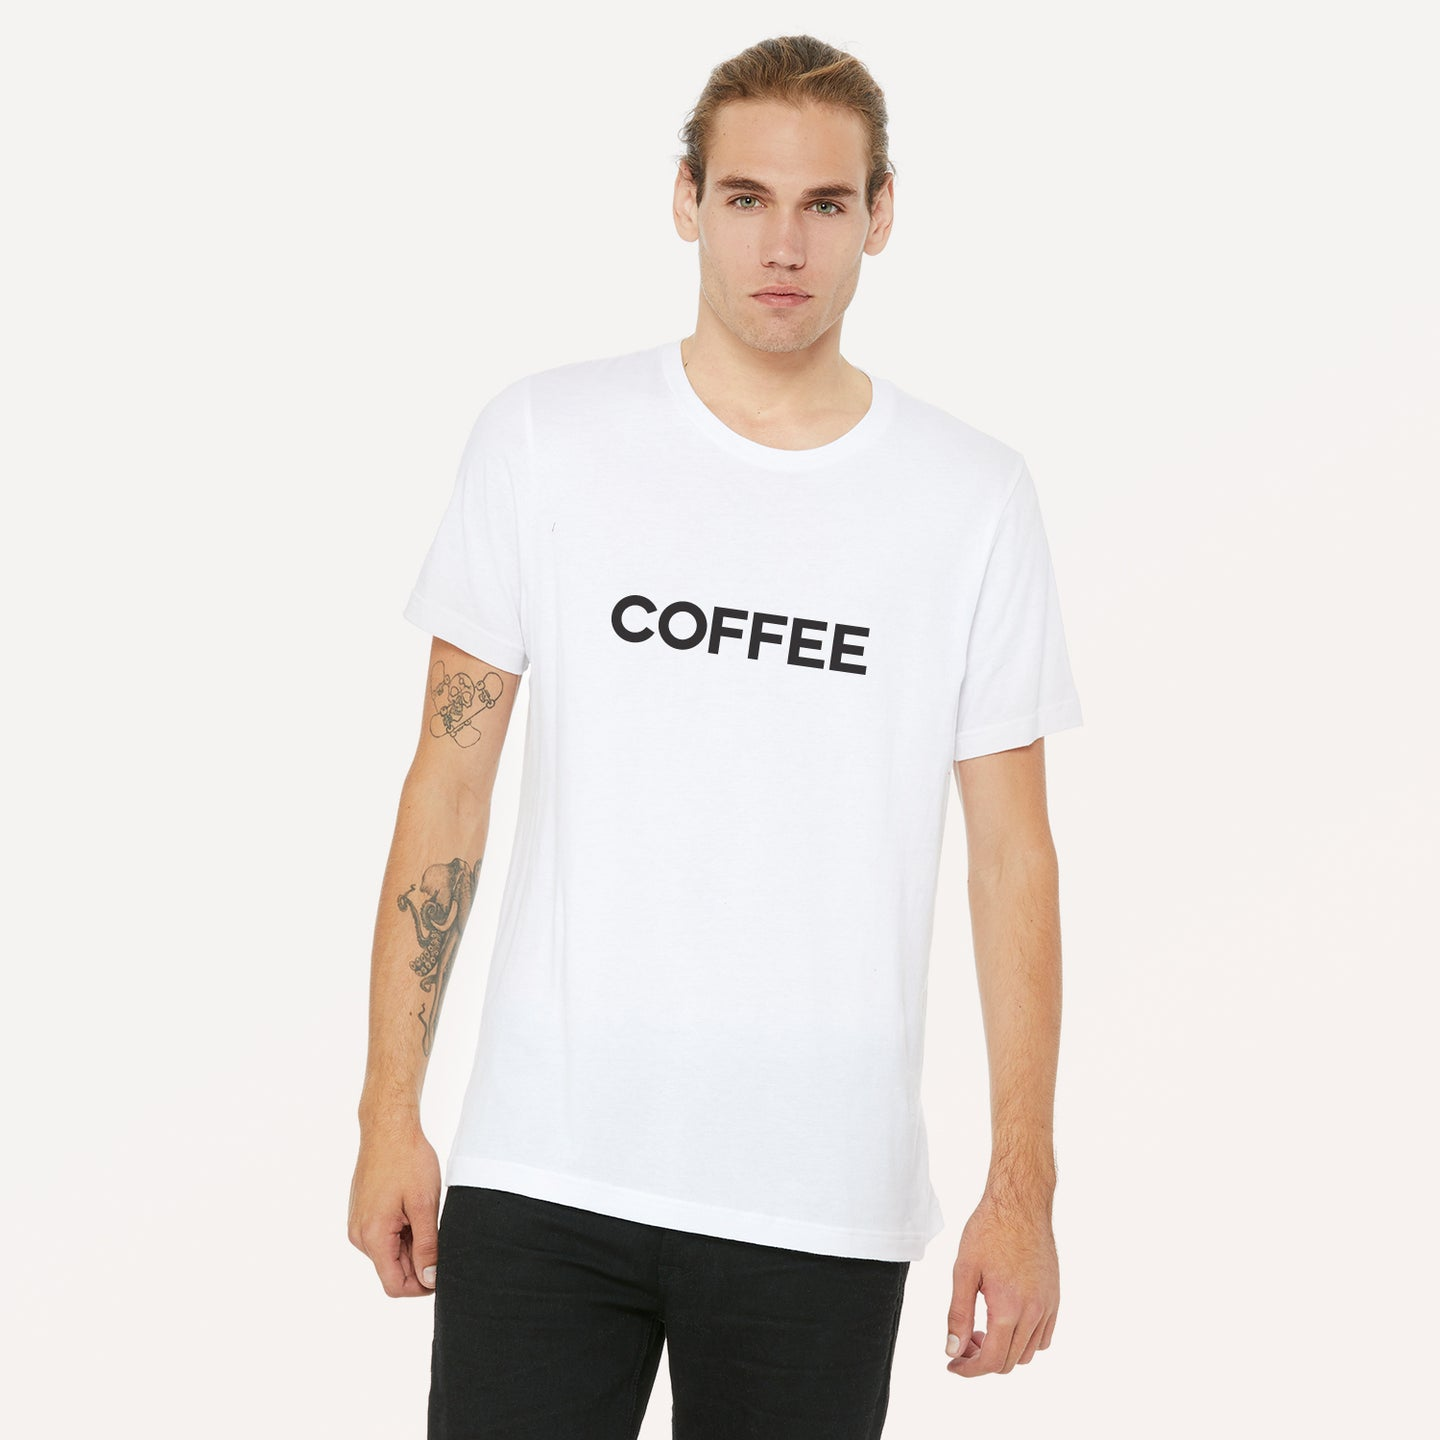 Coffee graphic screenprinted in black on a white unisex soft cotton jersey t-shirt.